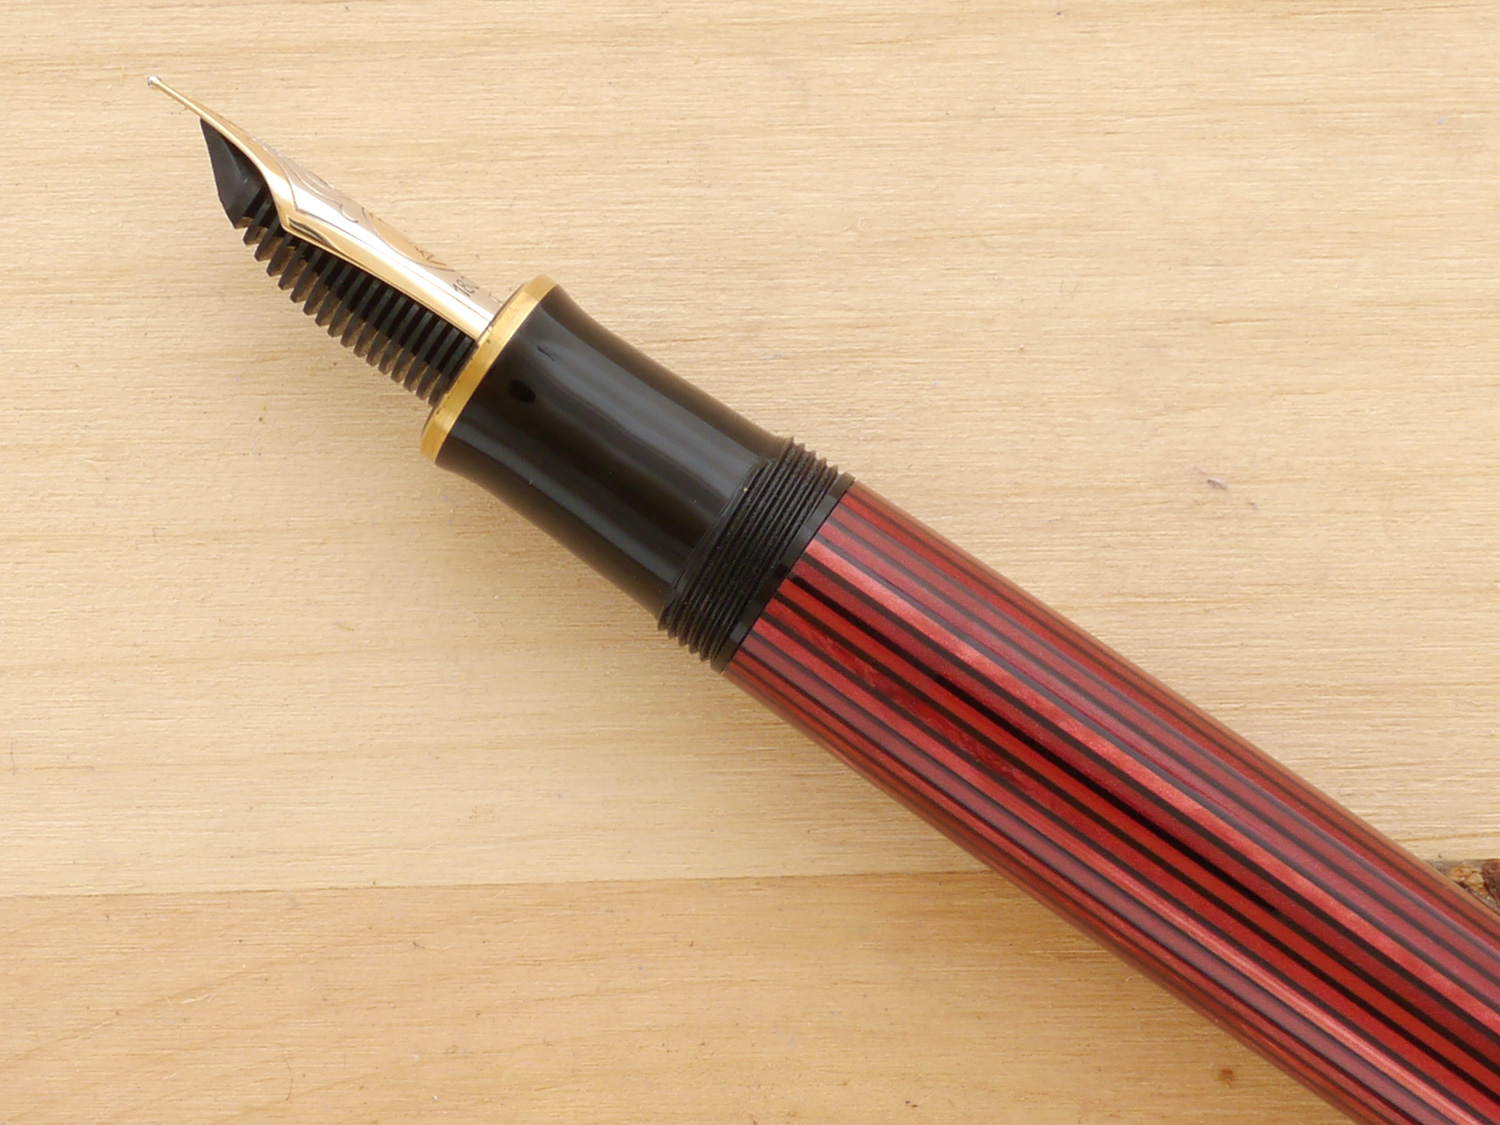 Pelikan Souverän M800, Red Stripe, XF, nib profile showing excellent tipping geometry and alignment